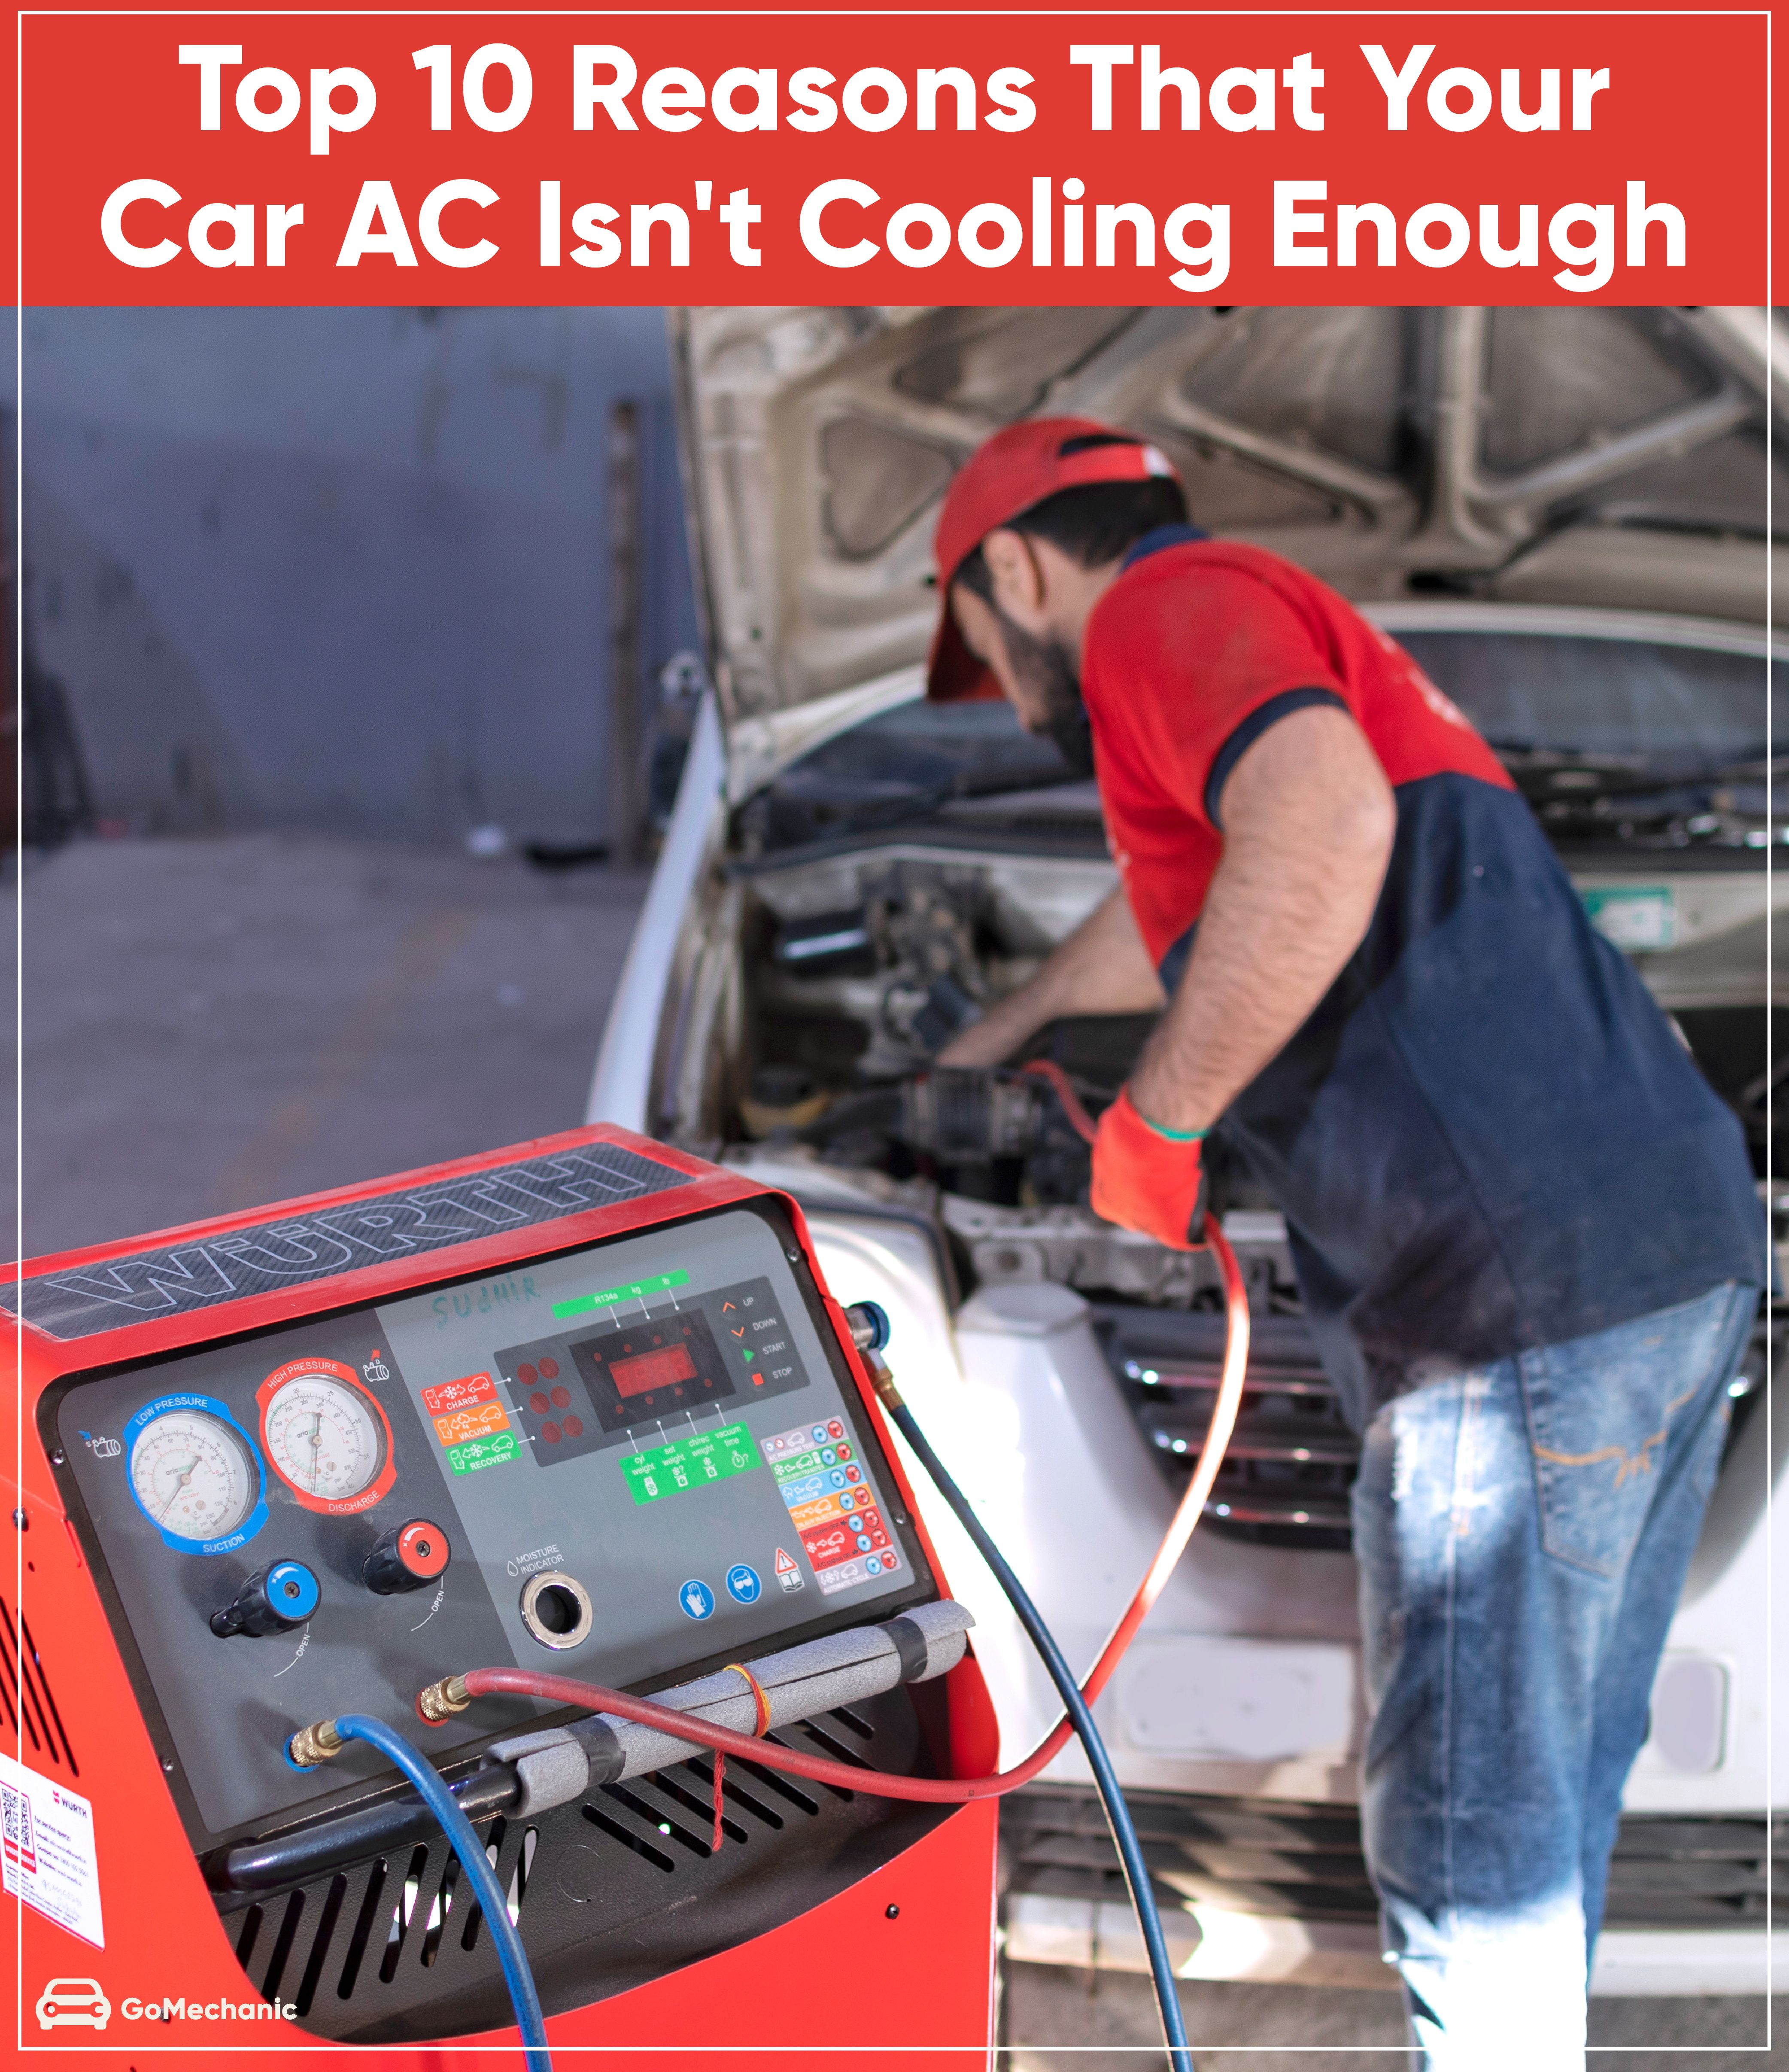 Top 10 Reasons that your Car AC isn't Cooling Enough in